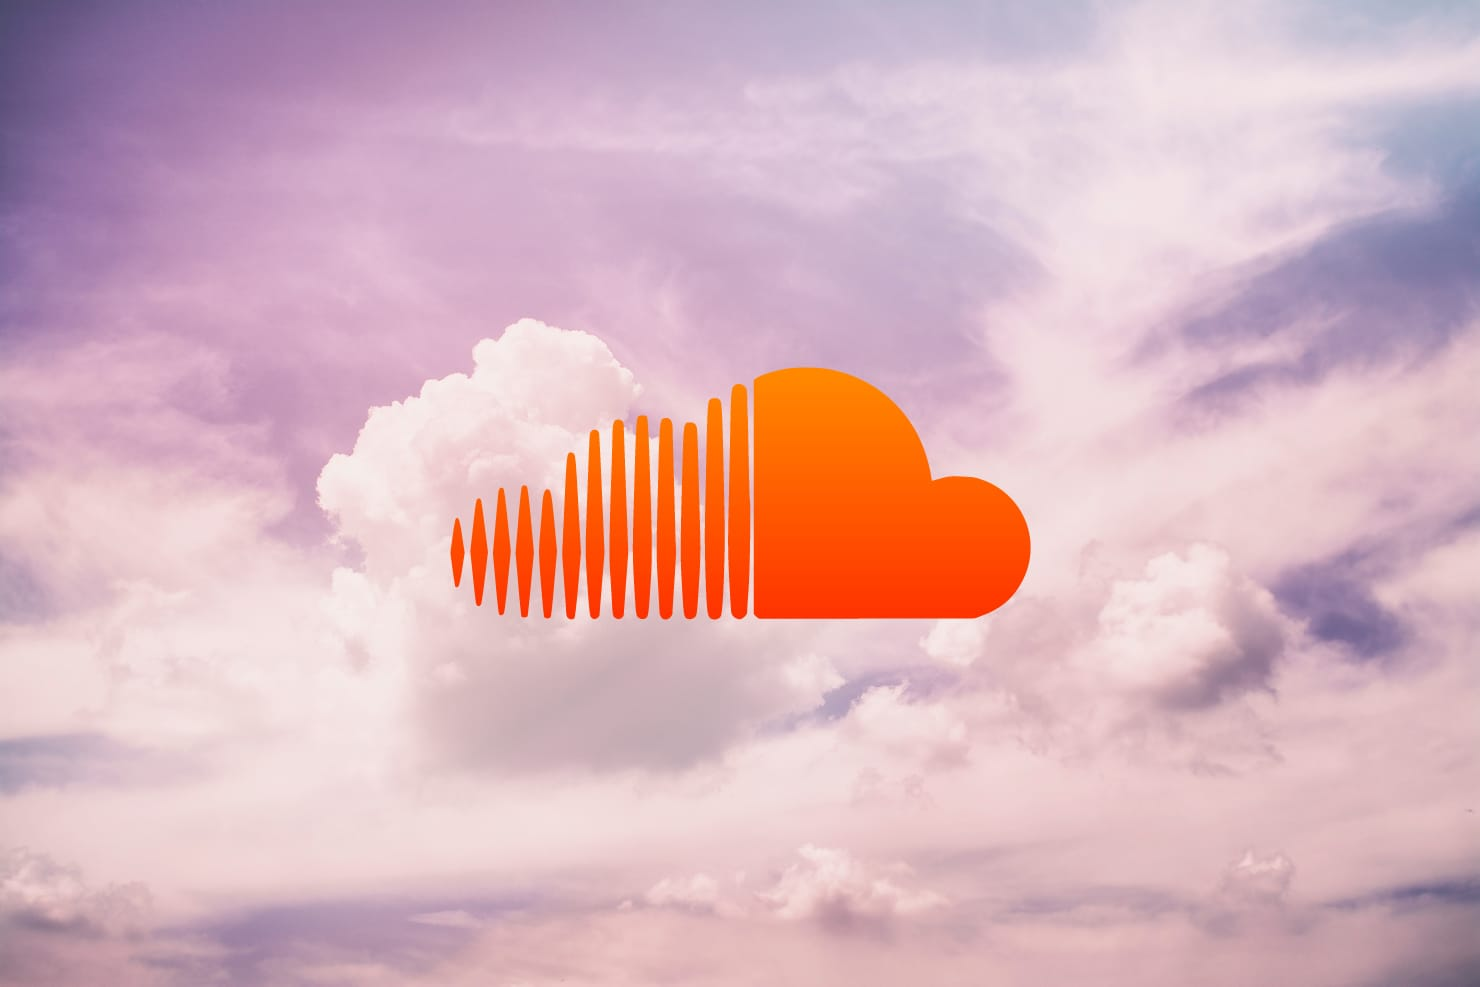 My Promote on SoundCloud Beta Results